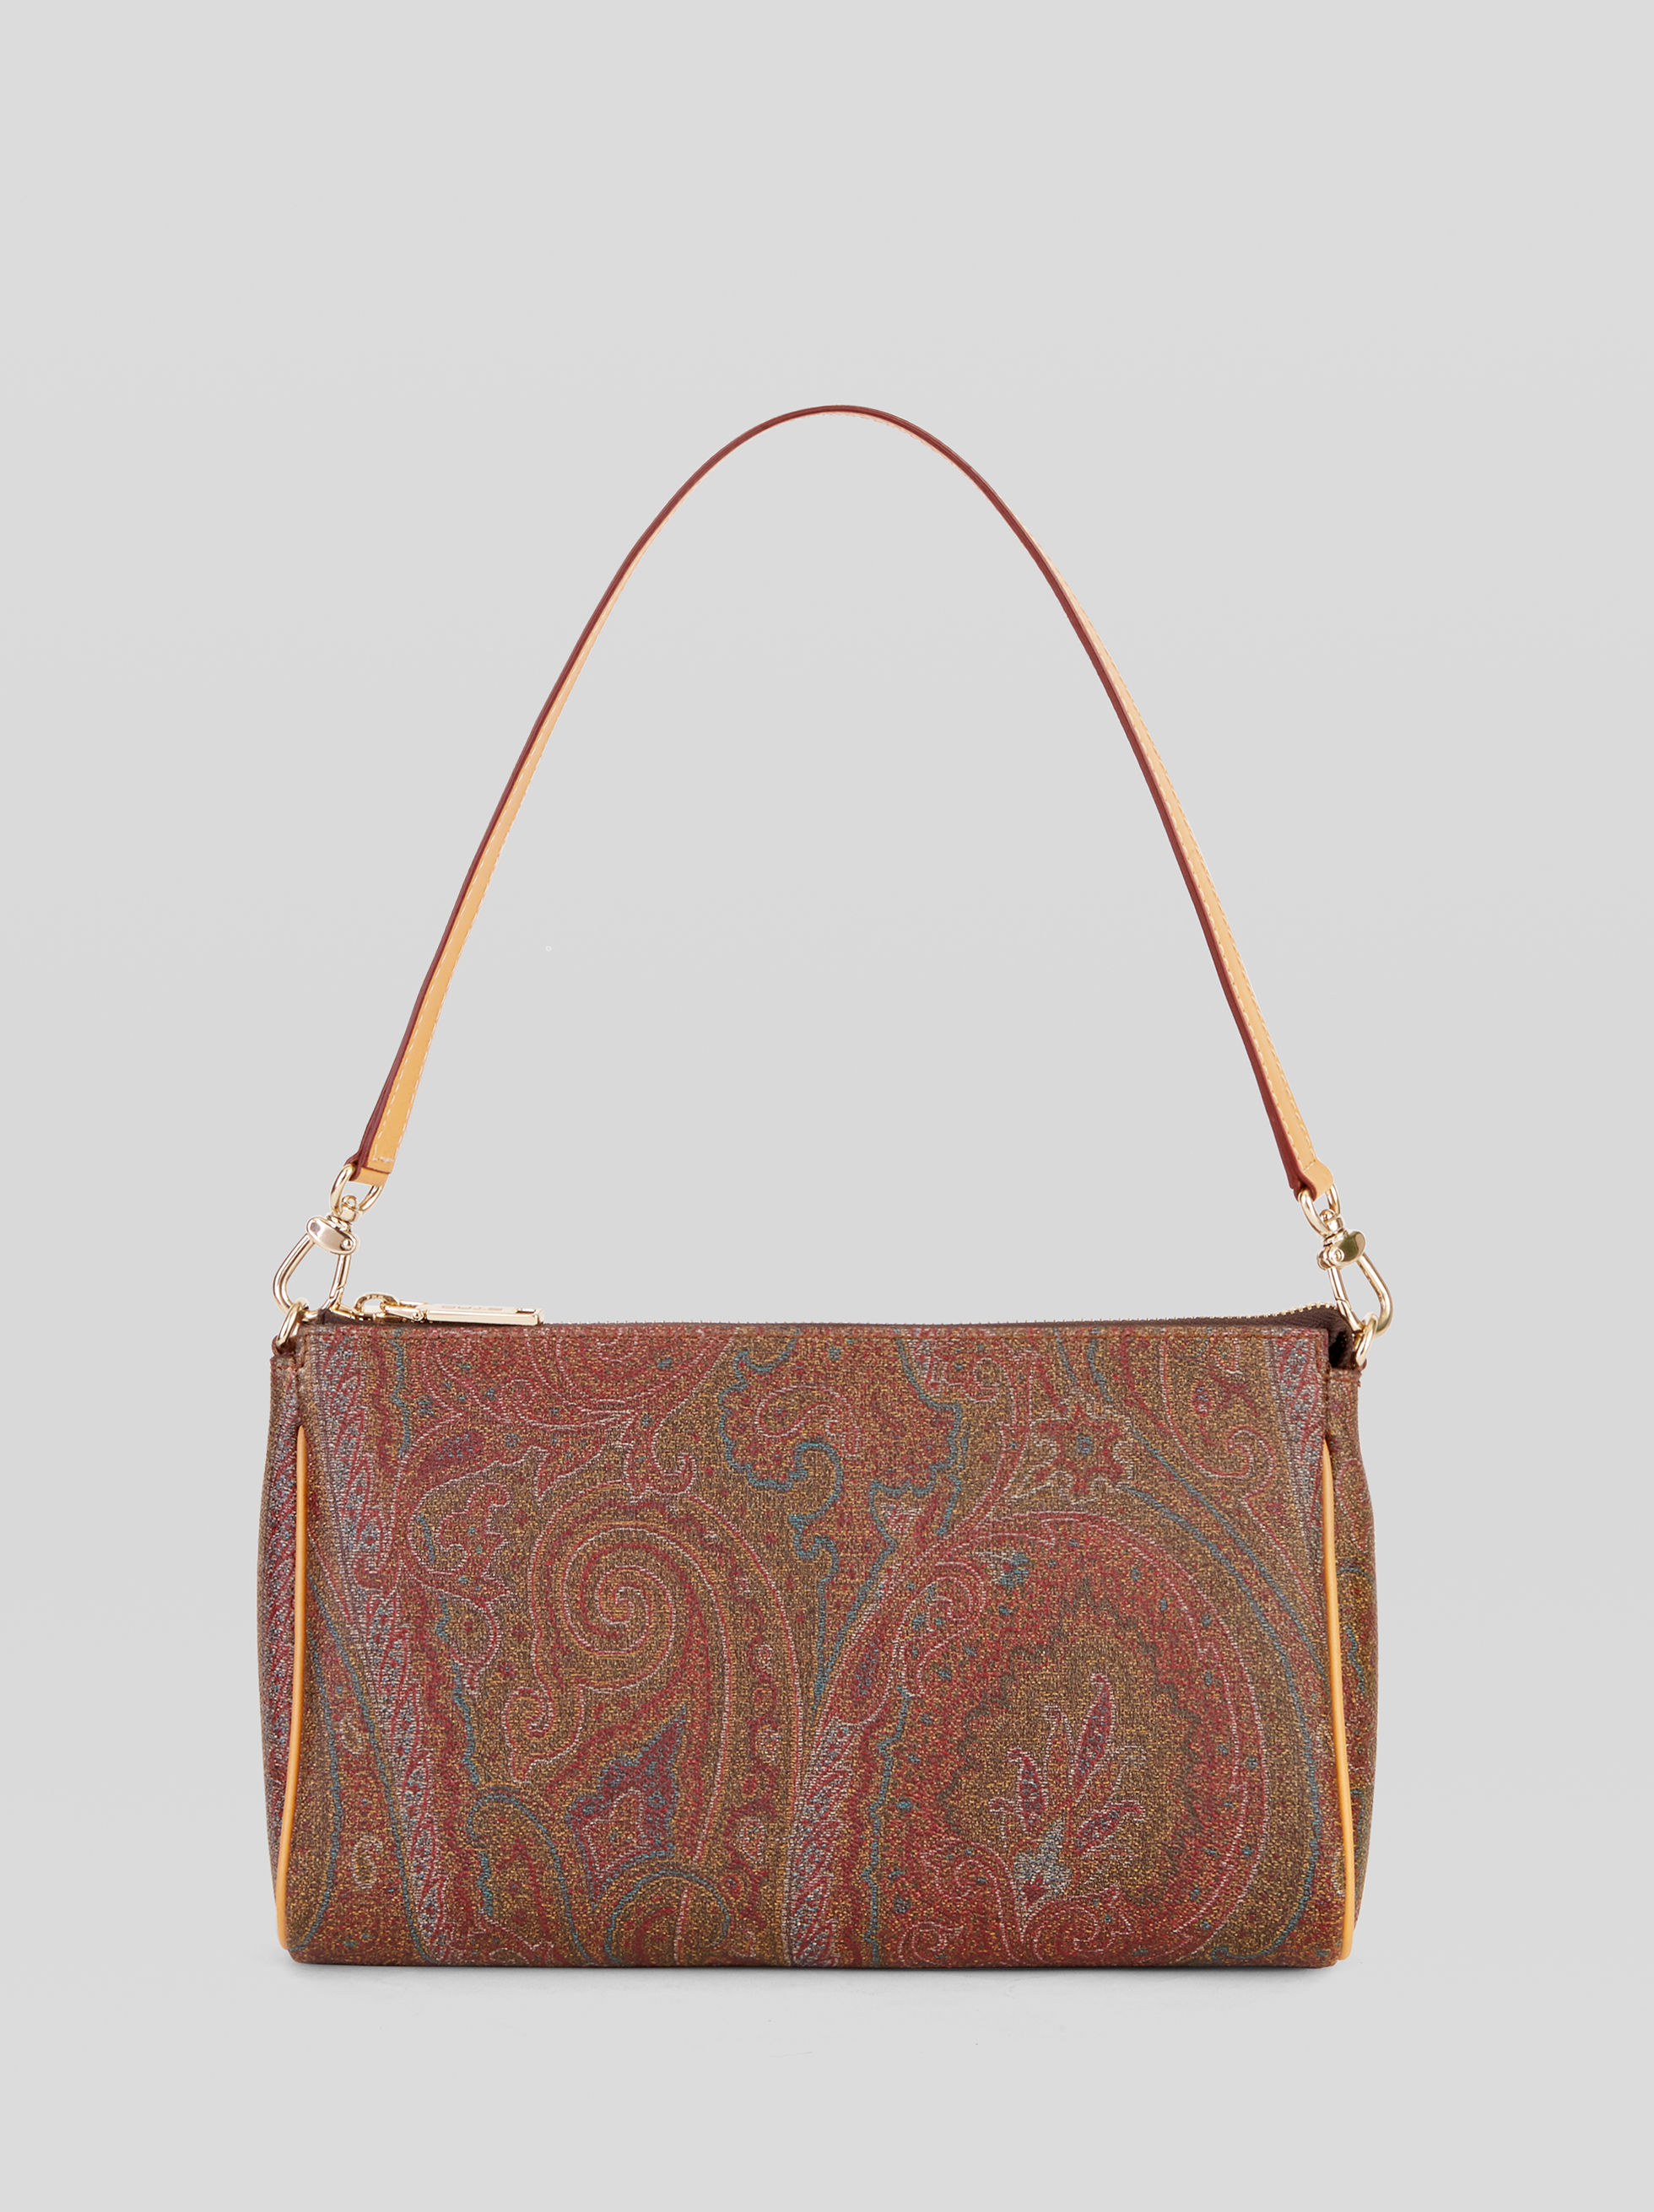 PAISLEY MINI BAG WITH LEATHER DETAILS